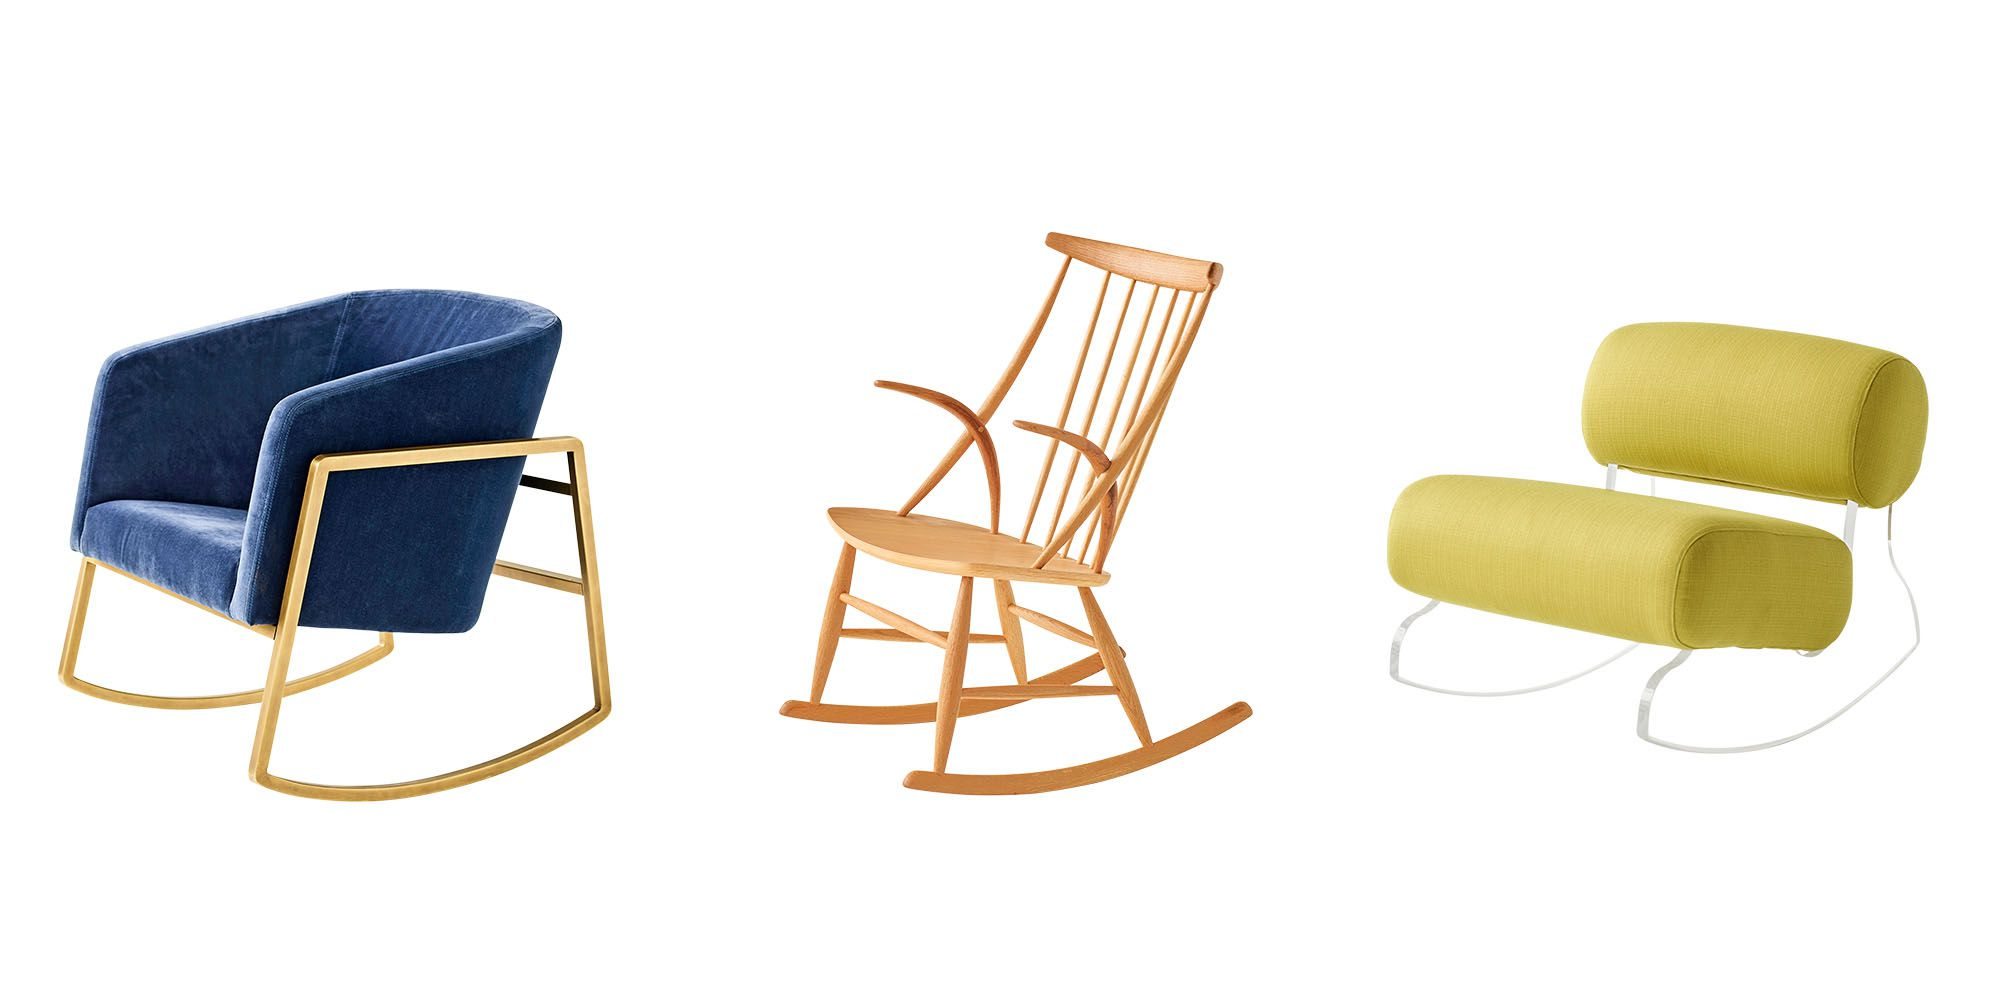 designer chairs 10 rocking chairs for indoors or outdoors - outdoor rocking chairs ARREOHI